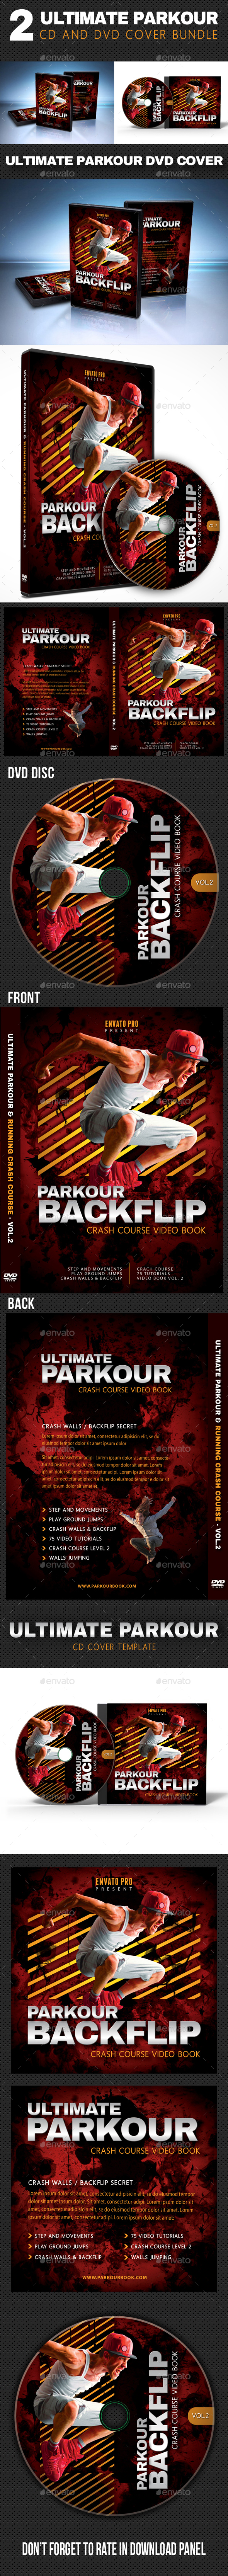 2 in 1 Ultimate Parkour CD and DVD Cover Bundle 02 - CD & DVD Artwork Print Templates